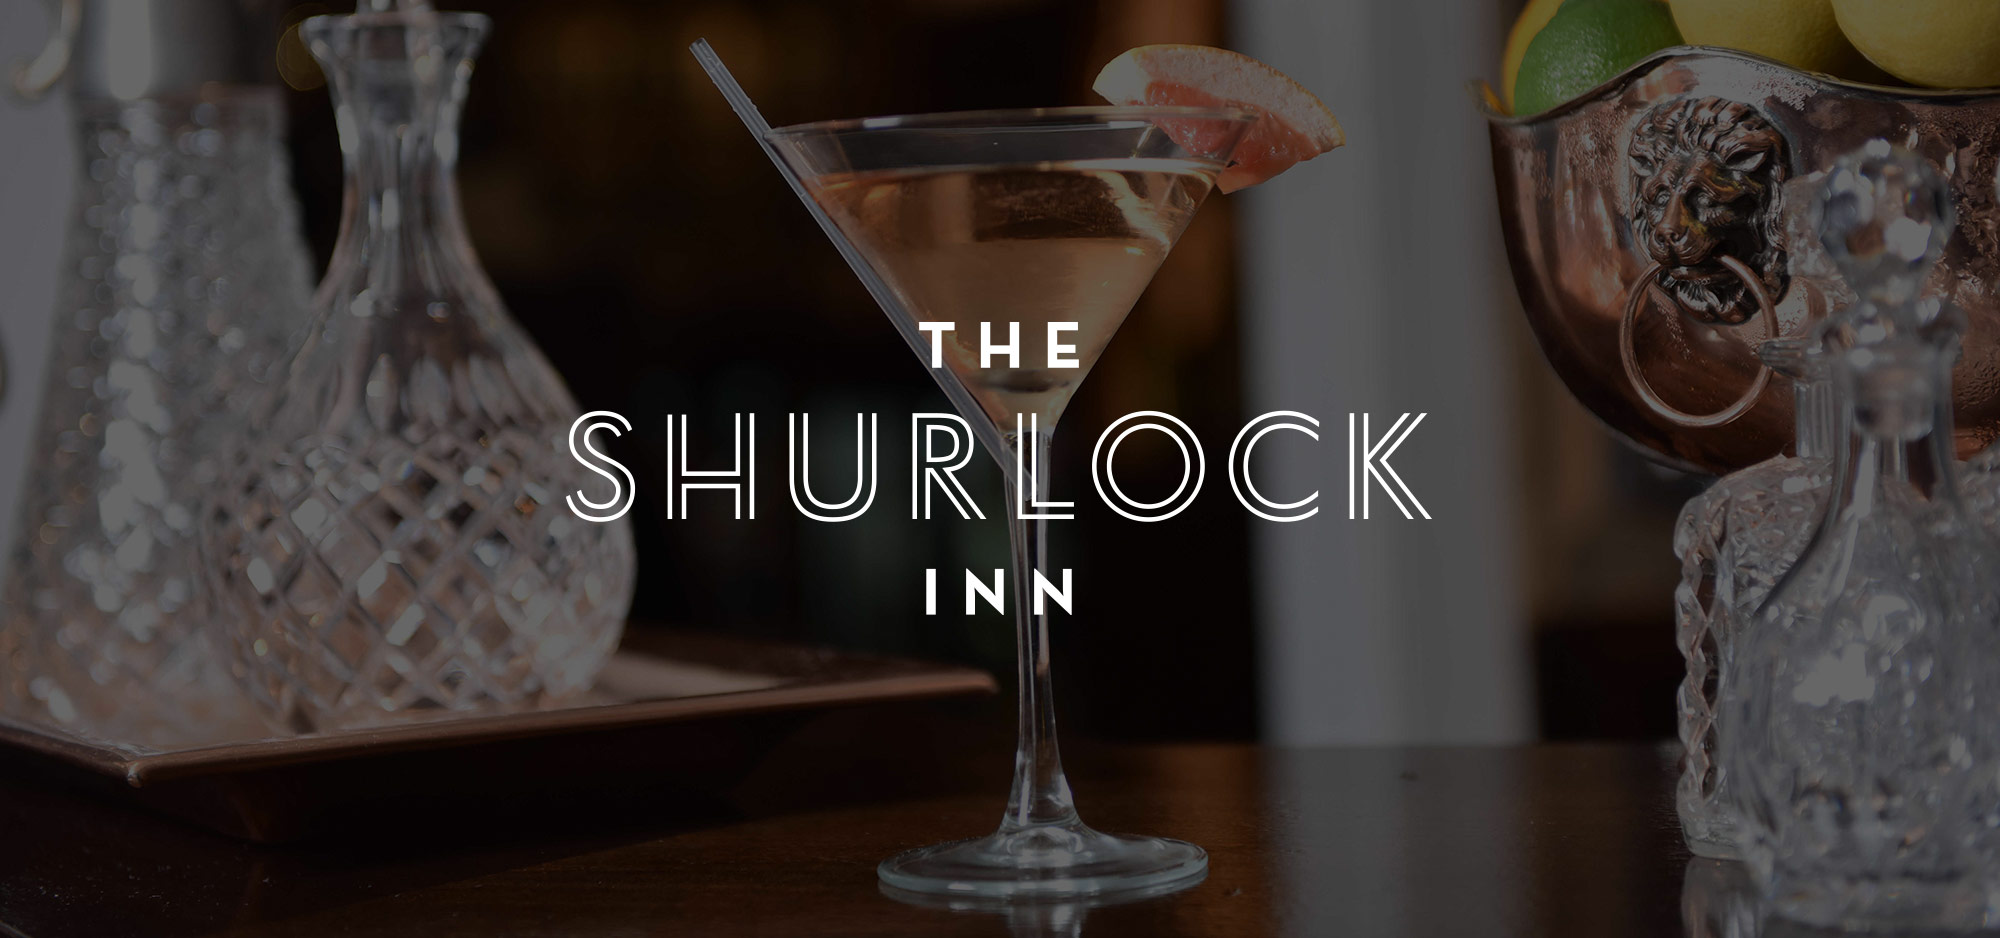 The Shurlock Inn main banner